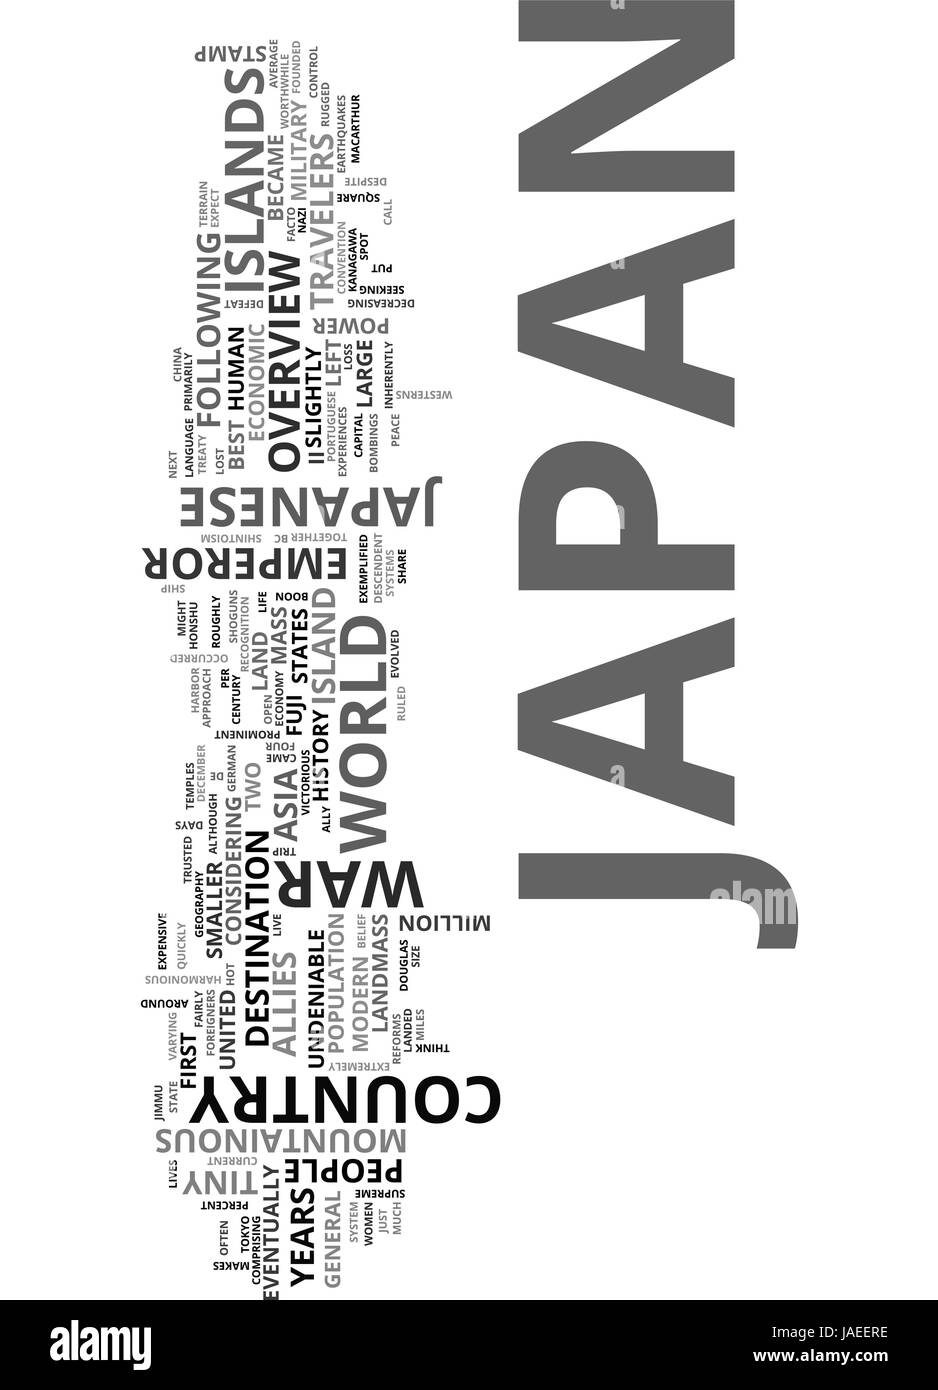 an overview of italy for travelers text word cloud concept stock